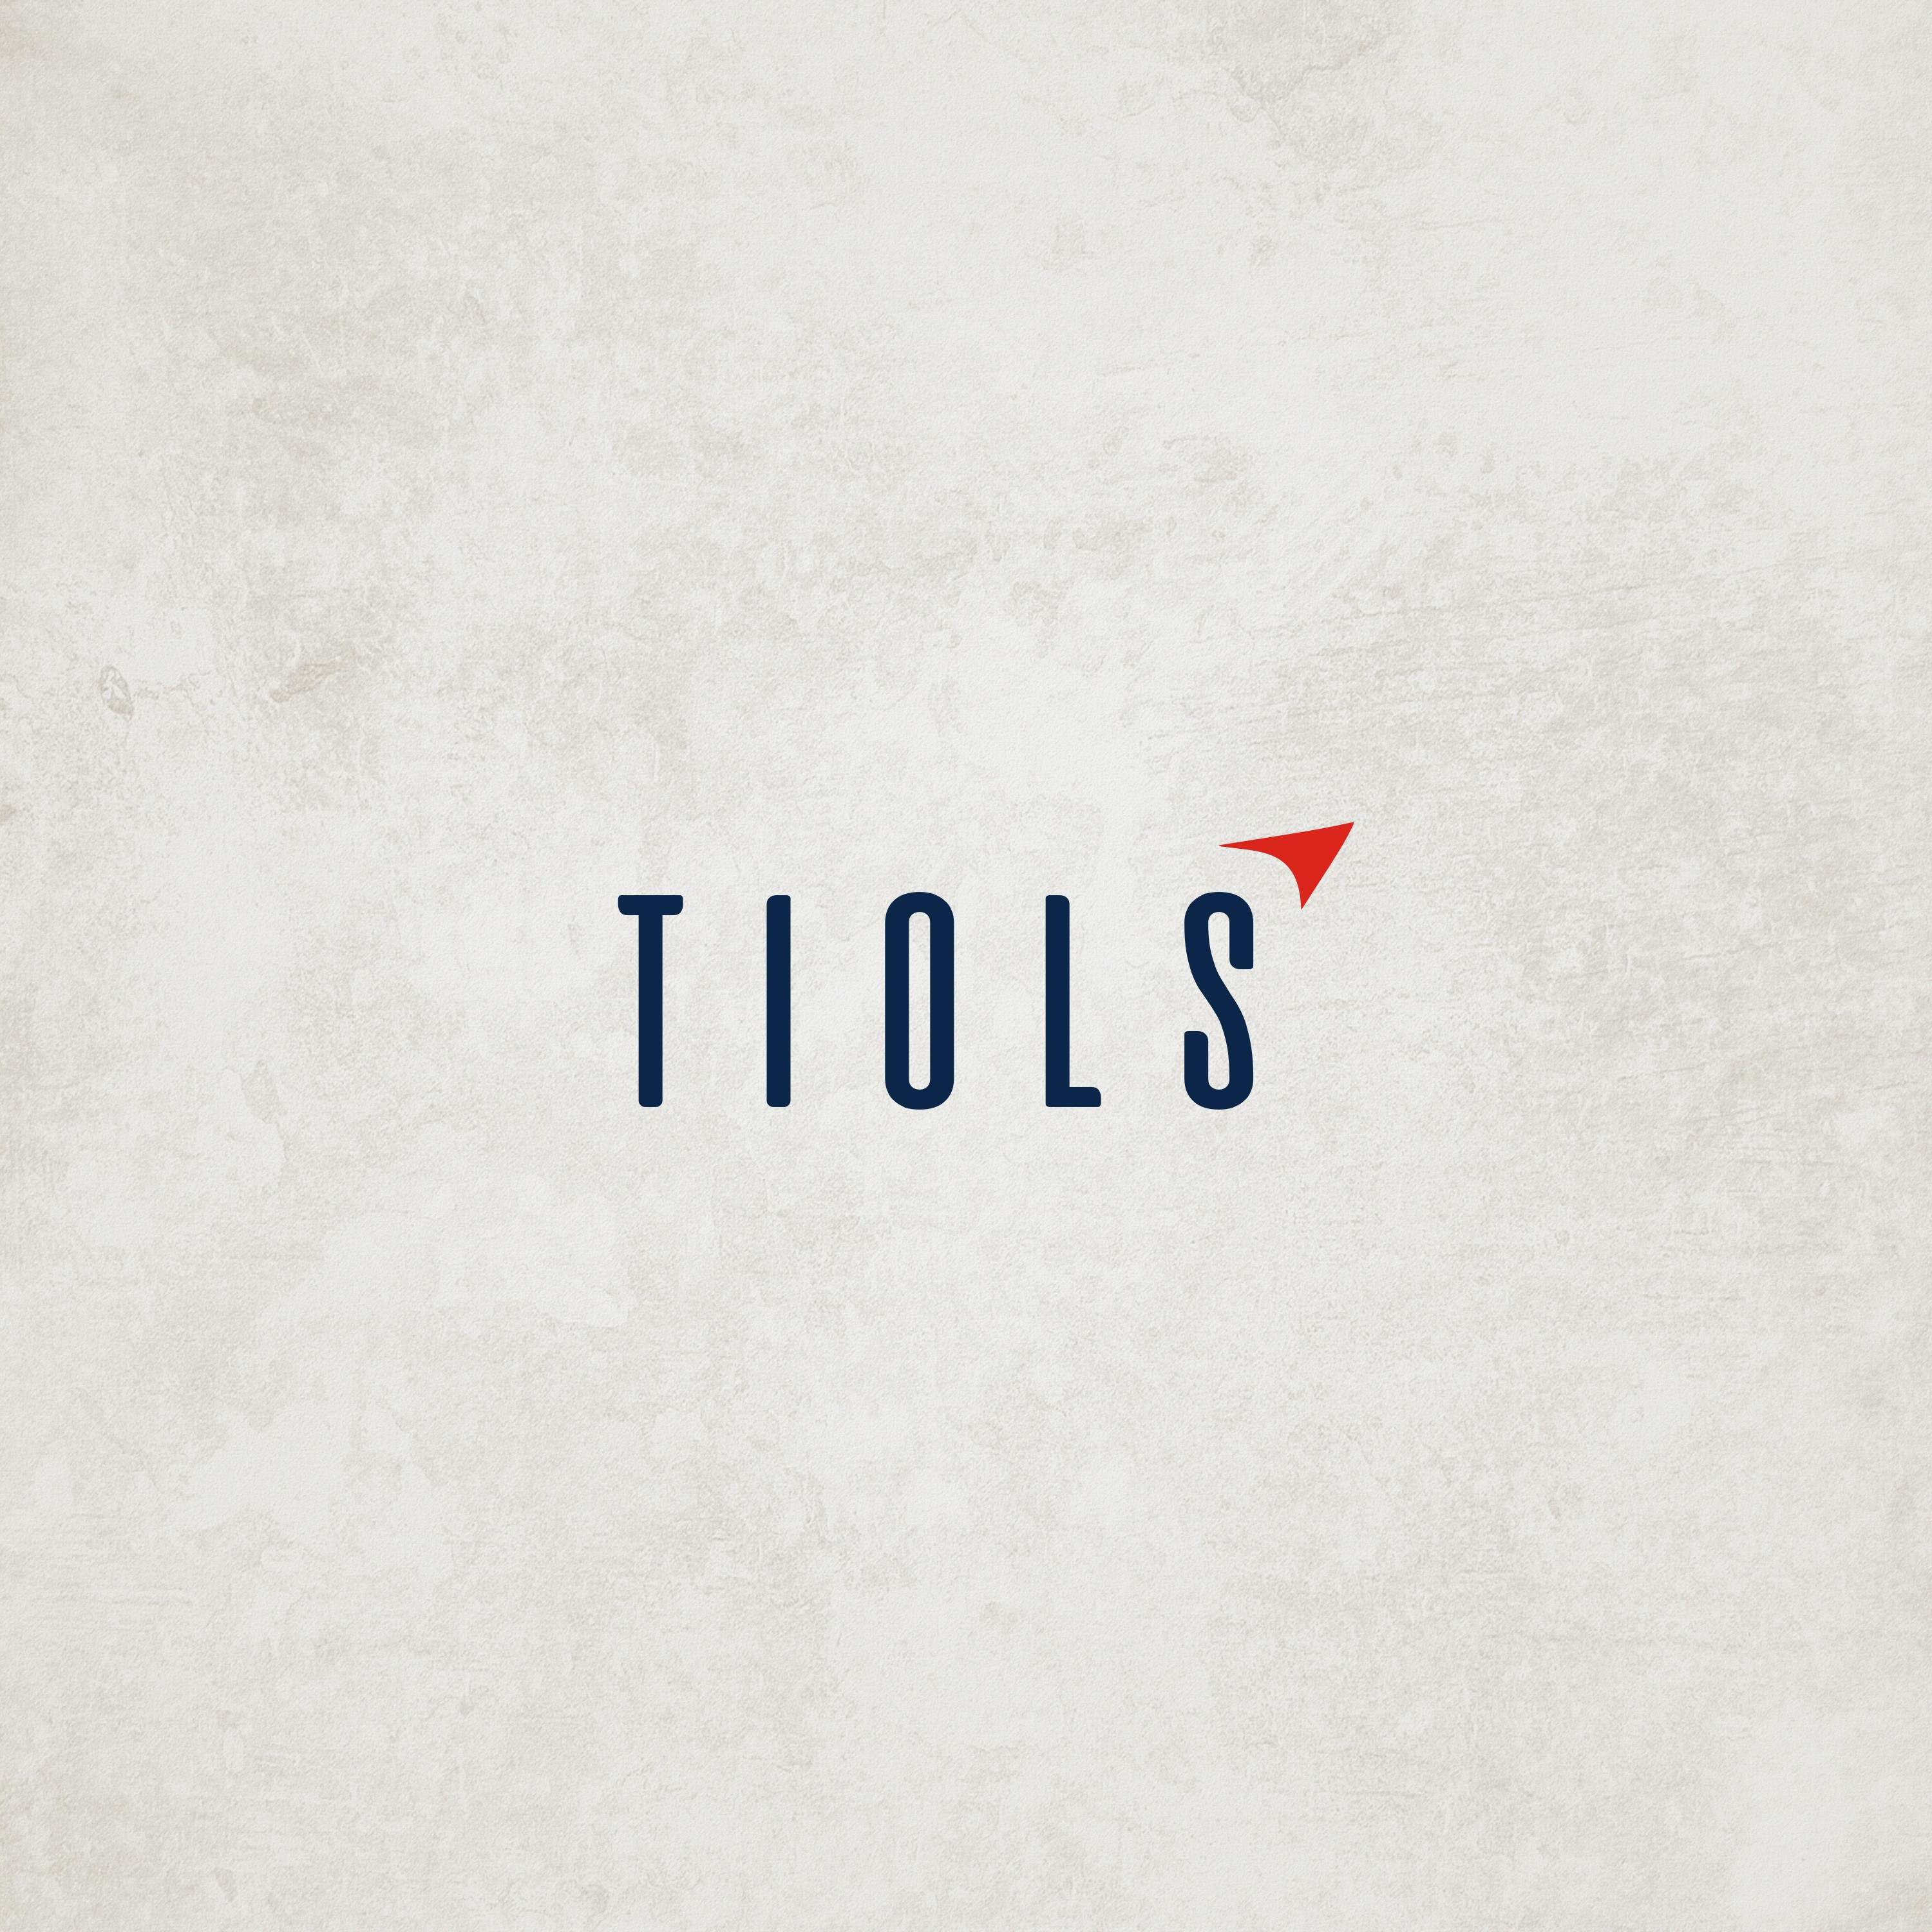 """Create a Logo for our new consulting company """"TIOLS""""/コンサルティング会社「TIOLS」のロゴ制作"""